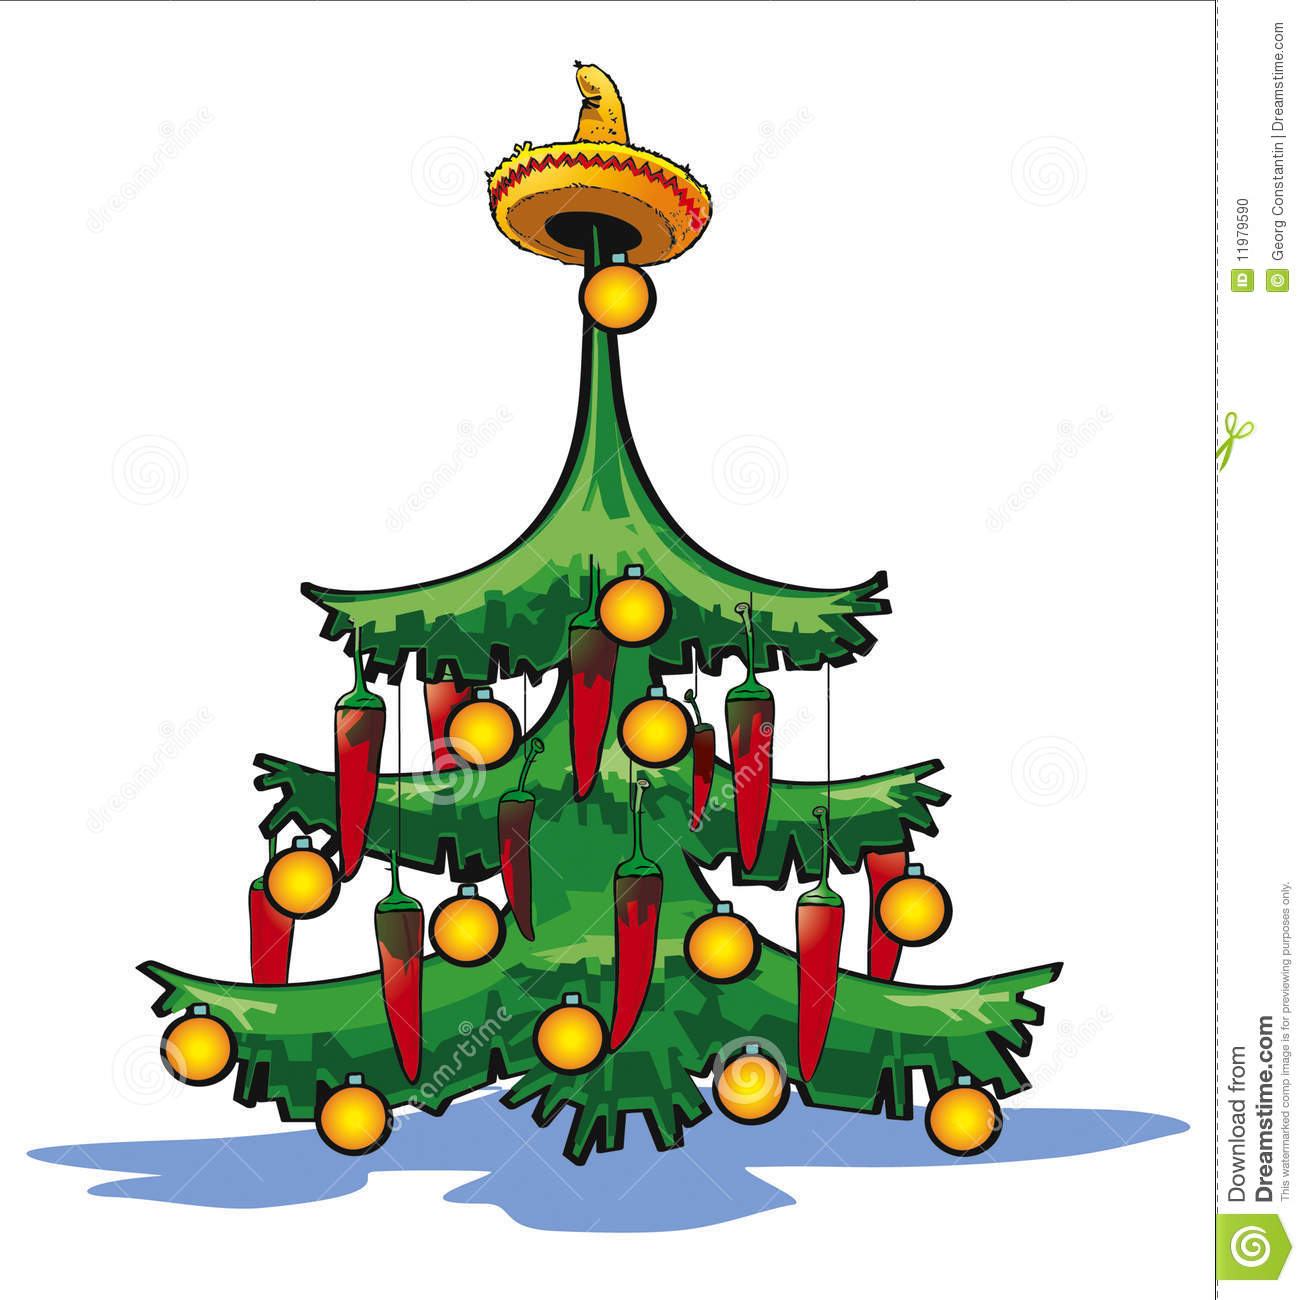 Mexican Christmas.Mexican Christmas Tree Stock Illustration Illustration Of